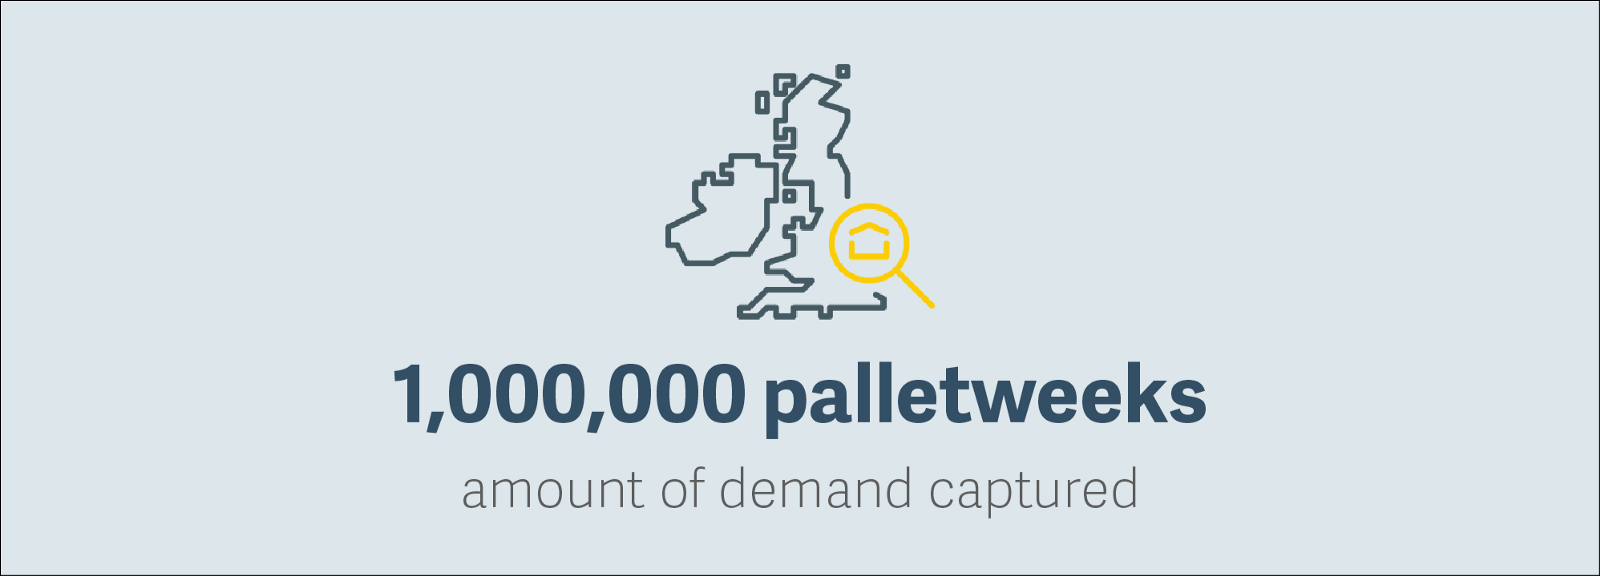 1000000 Palletweeks of demand captured